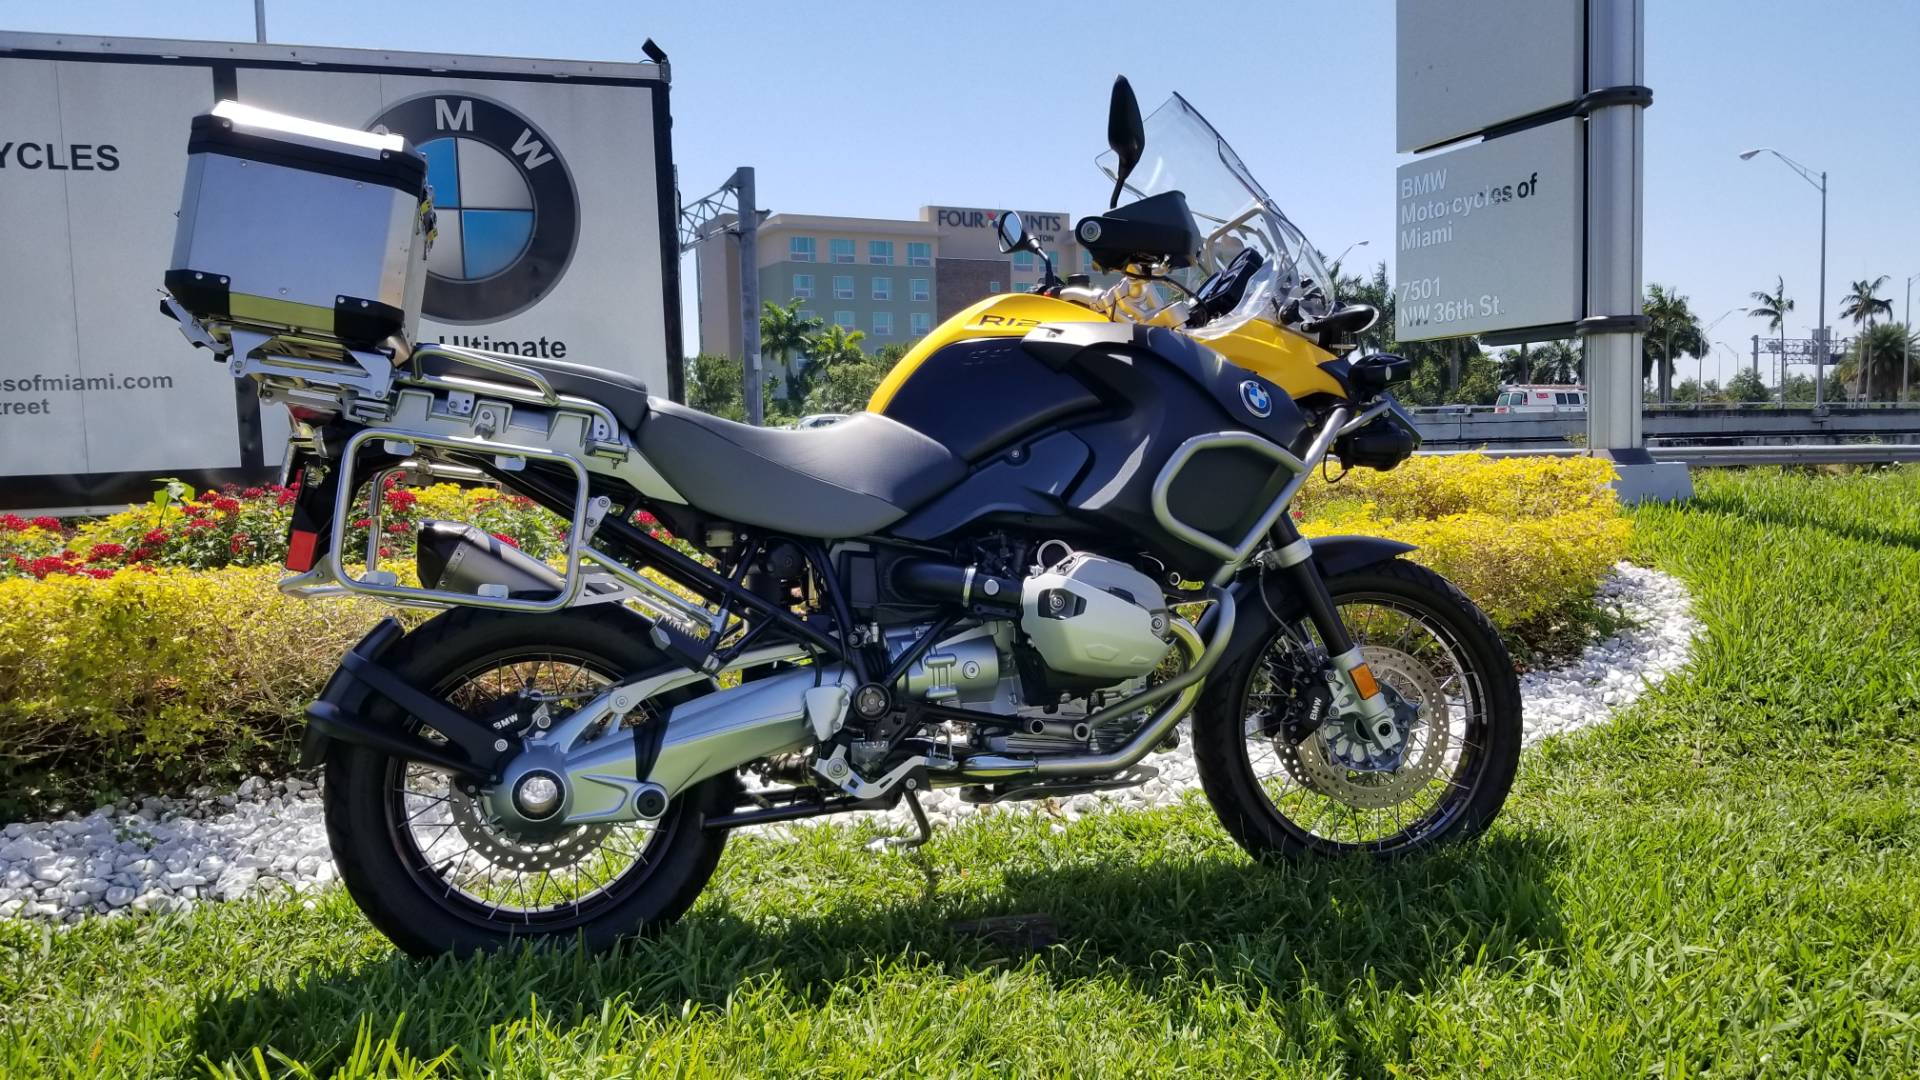 Used 2011 BMW R 1200 GSA For Sale, Pre owned BMW R 1200GSA For Sale, BMW Motorcycle R1200GSA, BMW Motorcycles of Miami, Motorcycles of Miami, Motorcycles Miami - Photo 16